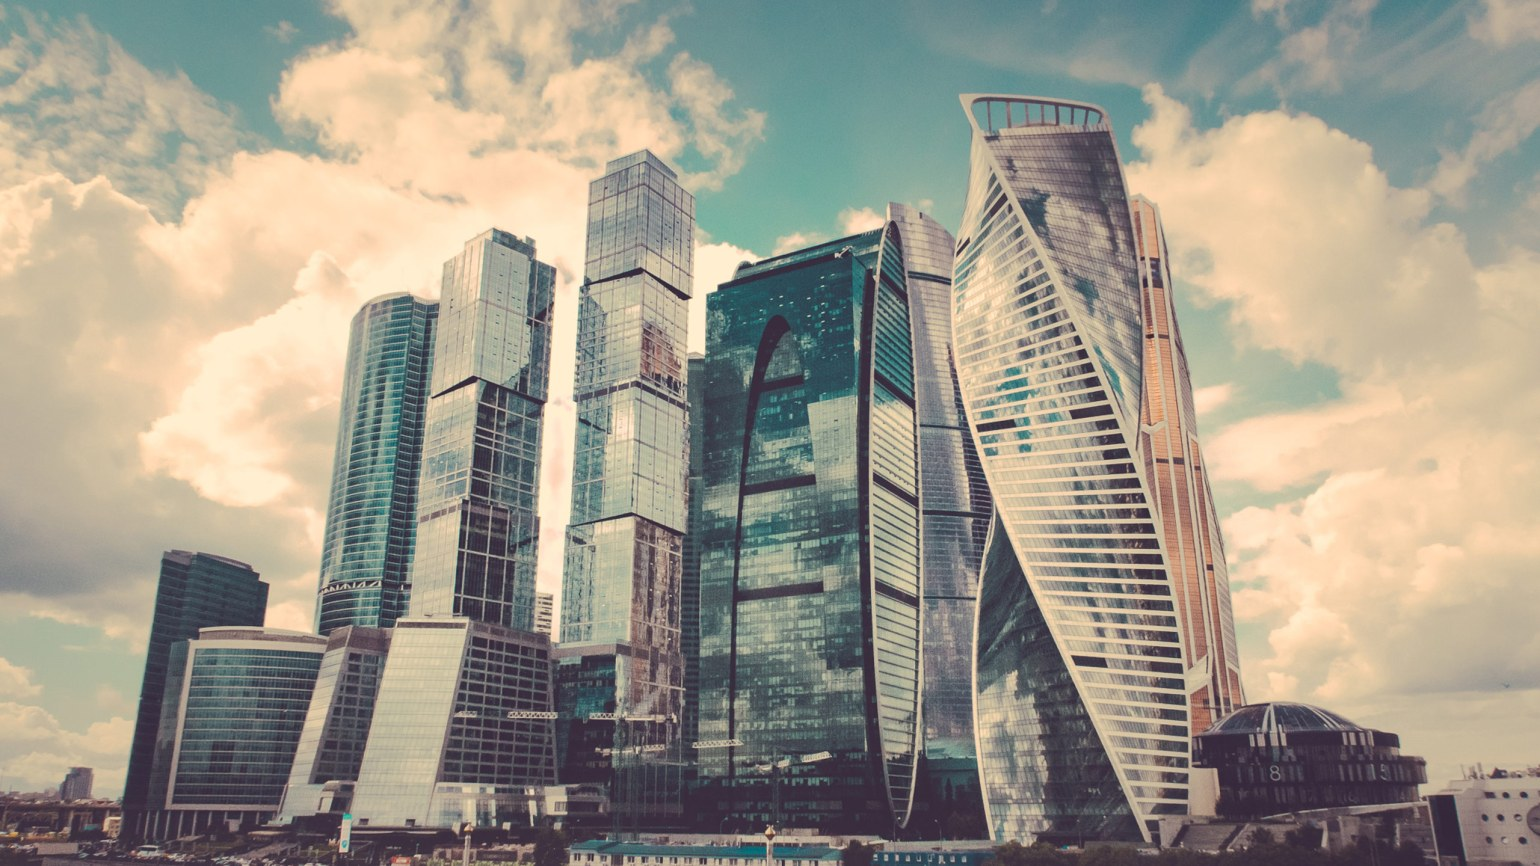 Moscow_photojournal38